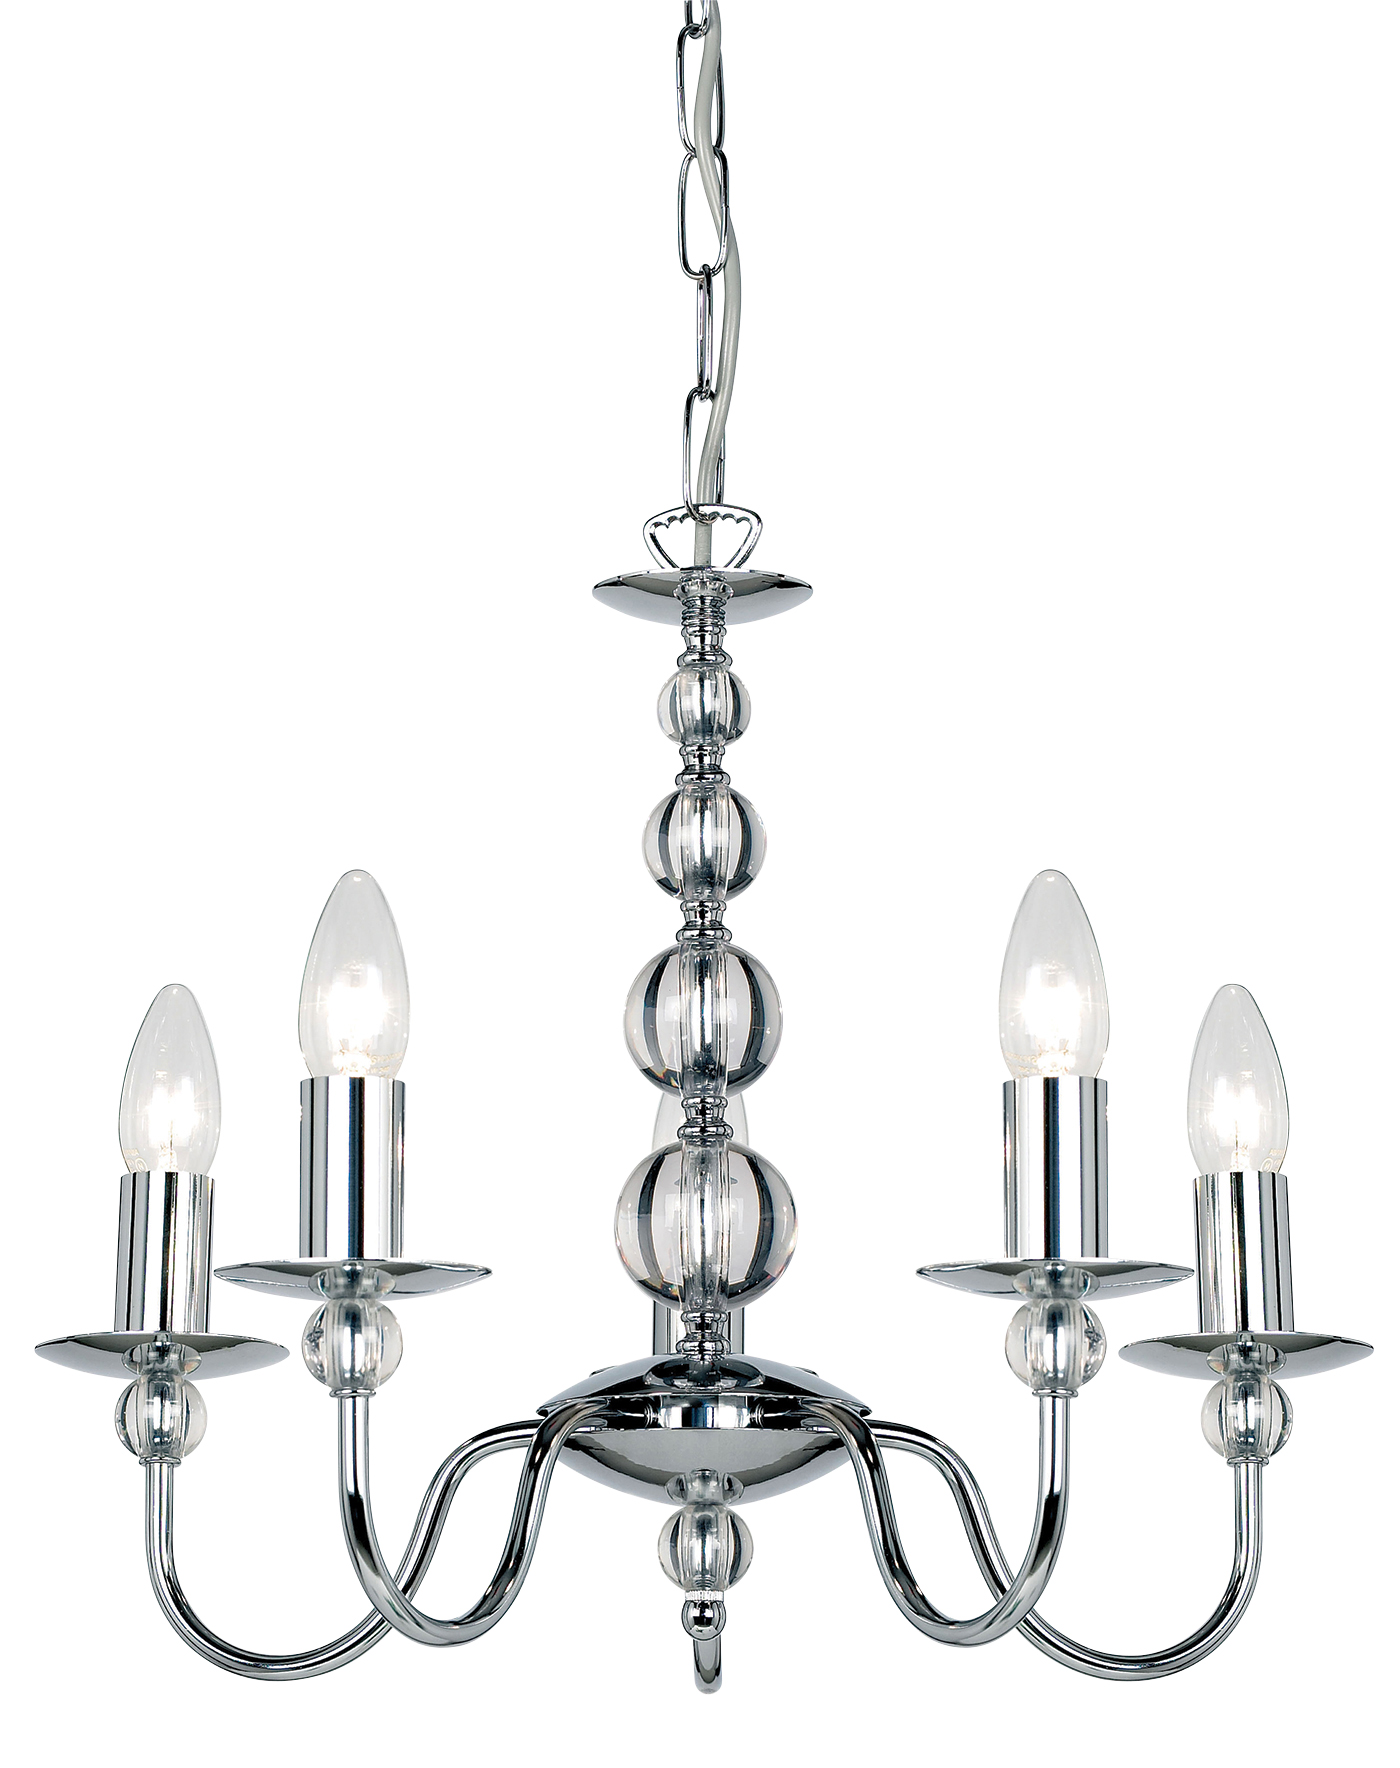 Endon Parkstone chandelier 5x 60W Chrome effect plate & clear glass Thumbnail 1